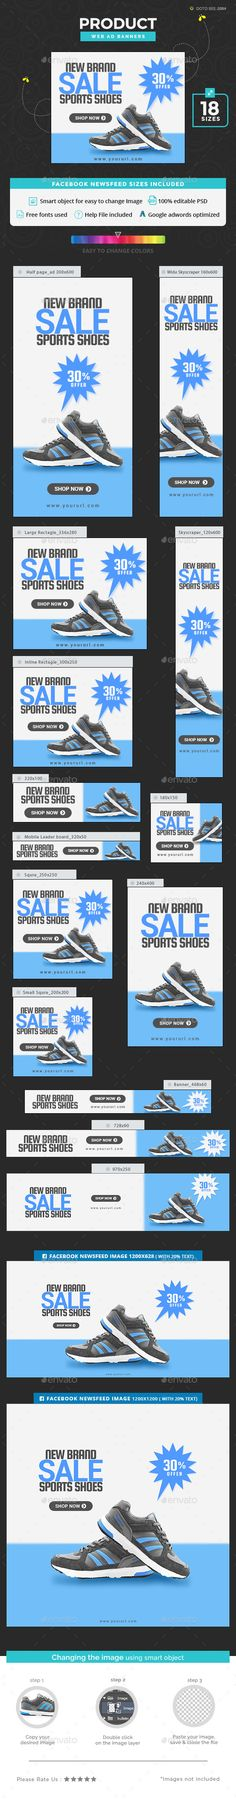 Product Sale Banners — Photoshop PSD #business #web banner • Available here → https://graphicriver.net/item/product-sale-banners/20139142?ref=pxcr